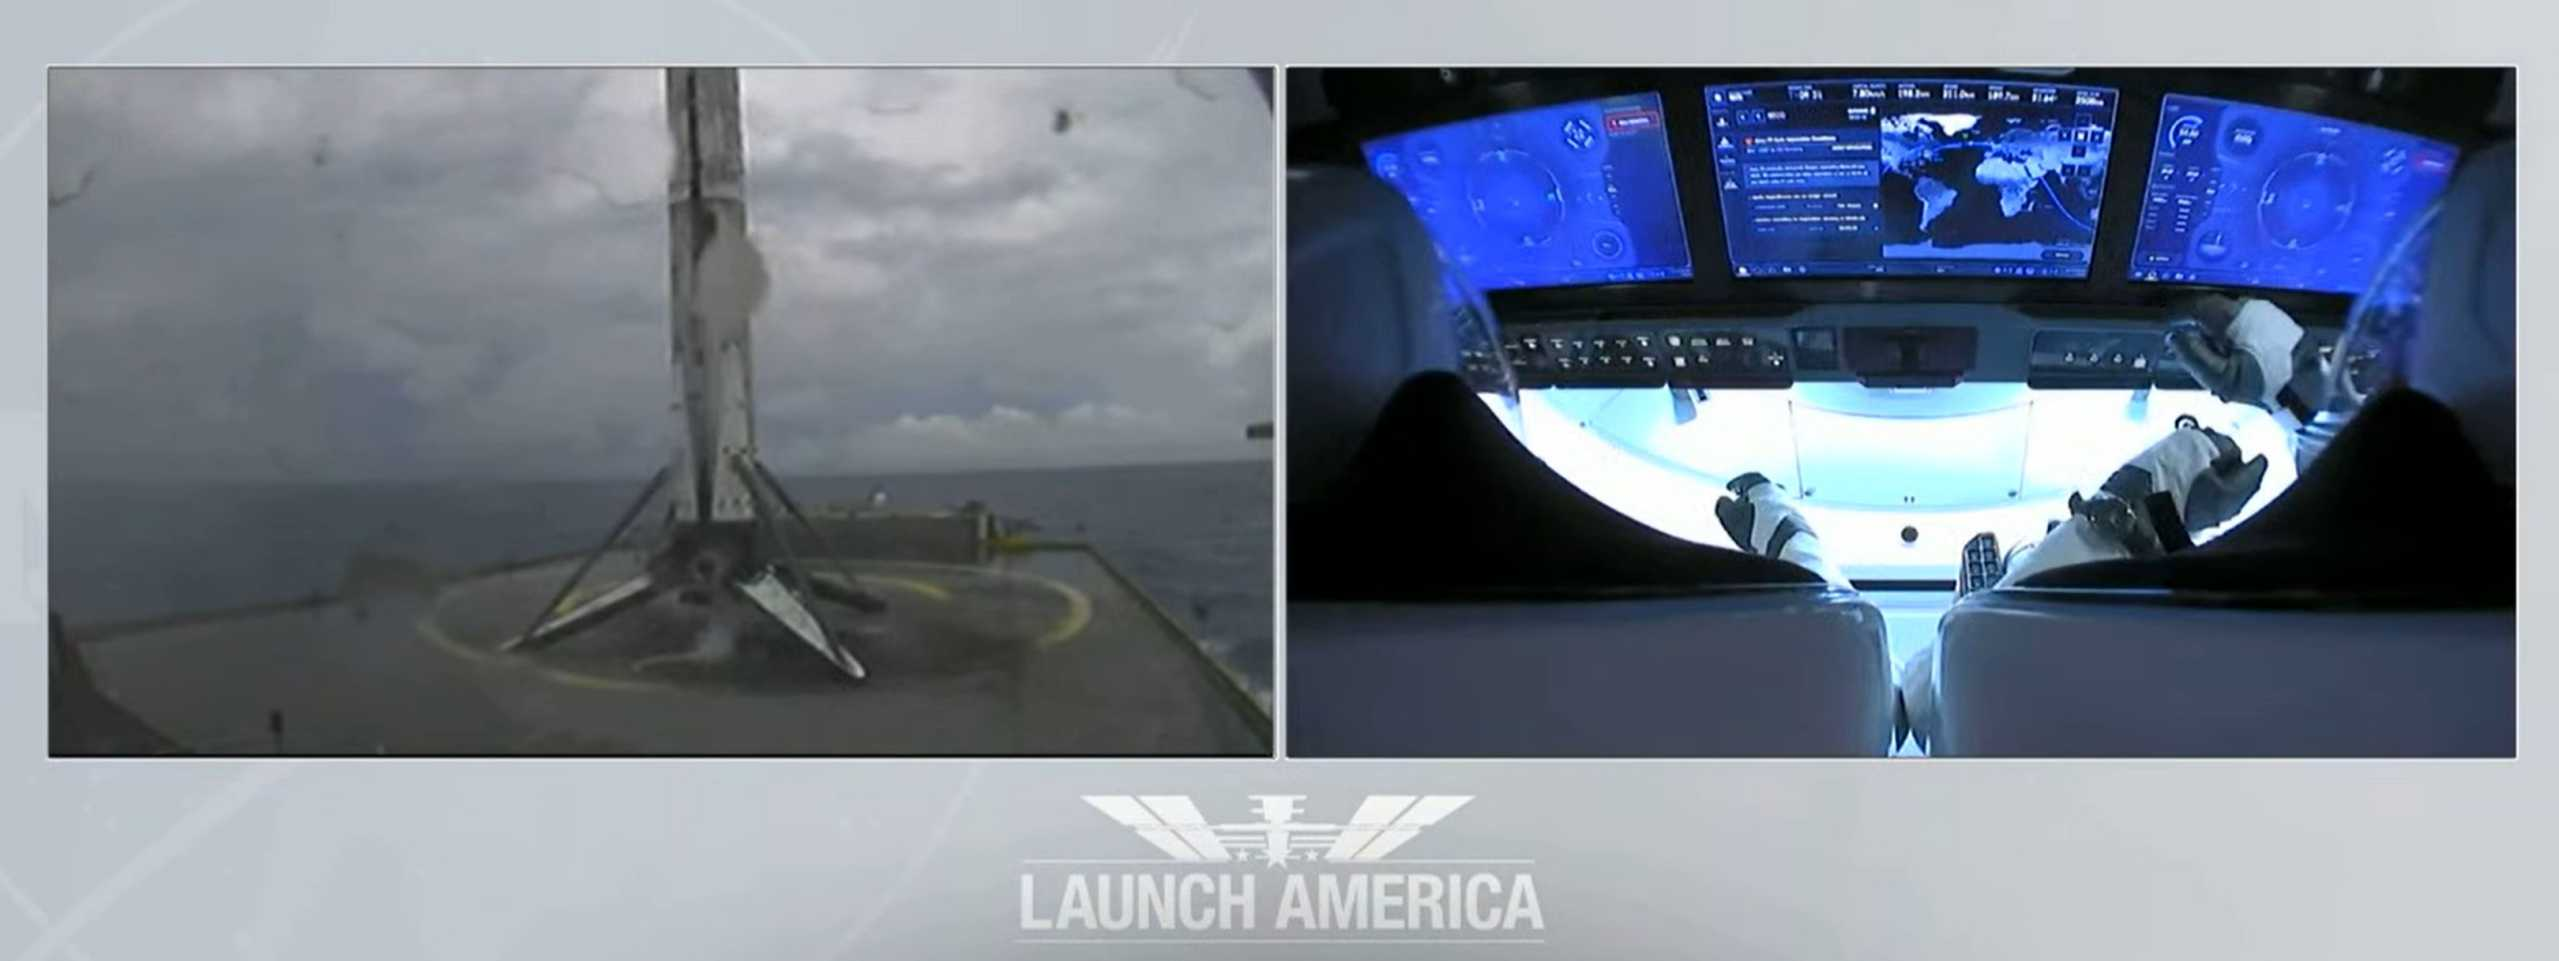 Crew Dragon C206 F9 B1058 Demo-2 053020 webcast (SpaceX) OCISLY 1 (c)